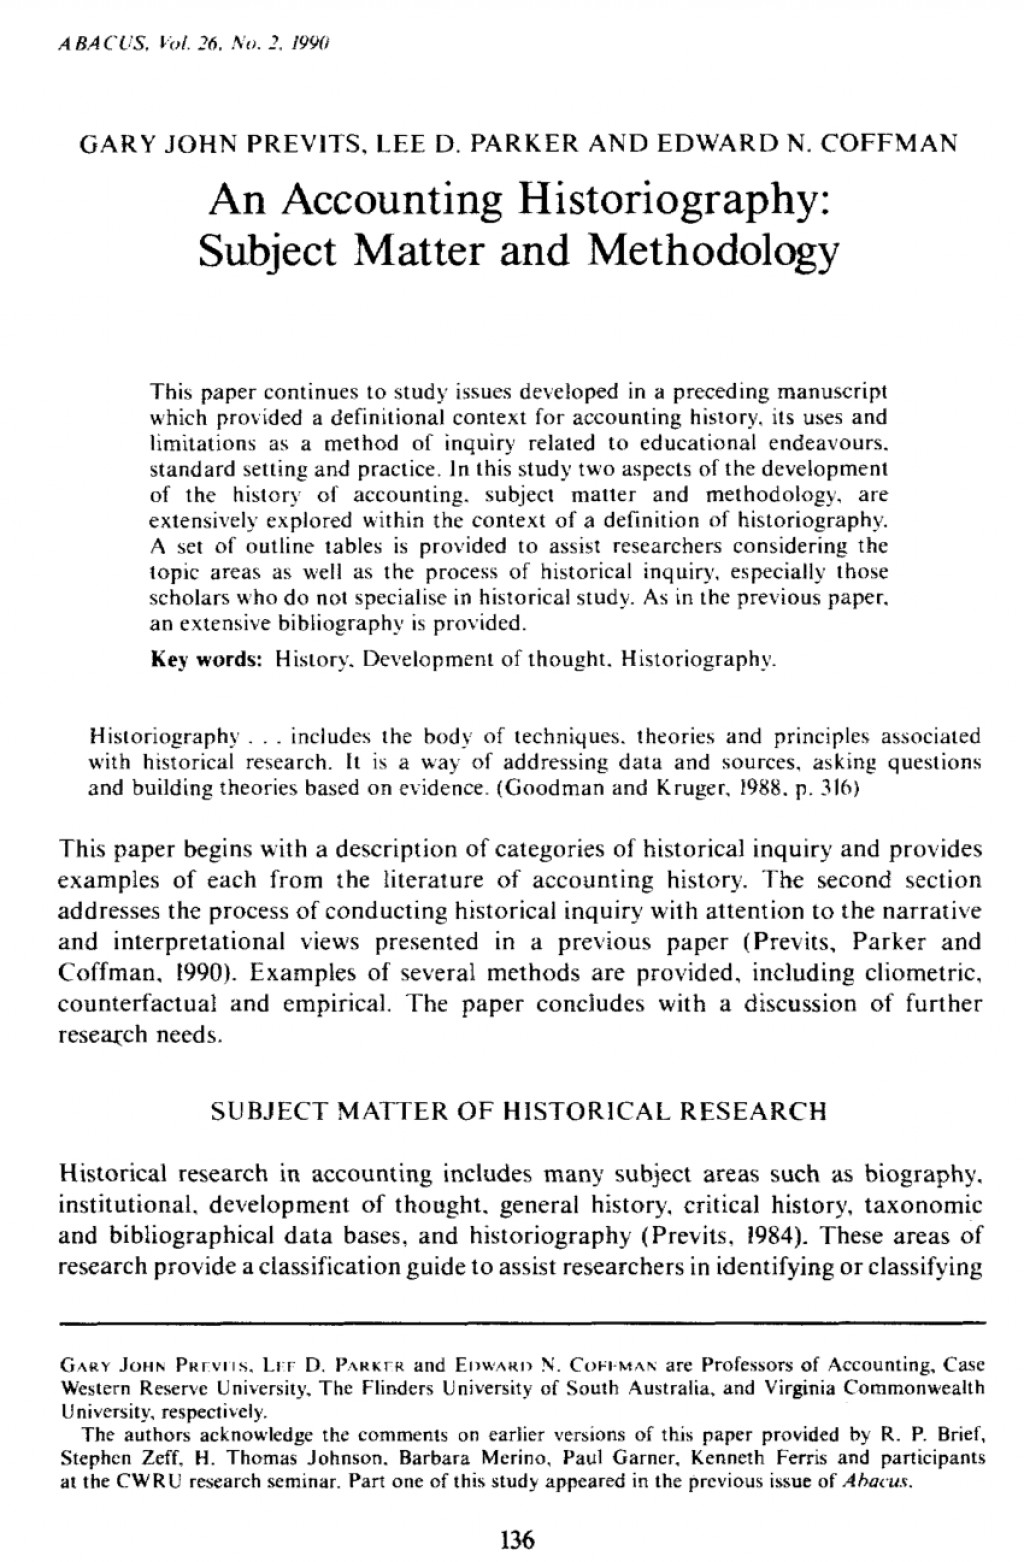 012 Art History Research Paper Example Staggering Outline Template Sample Large